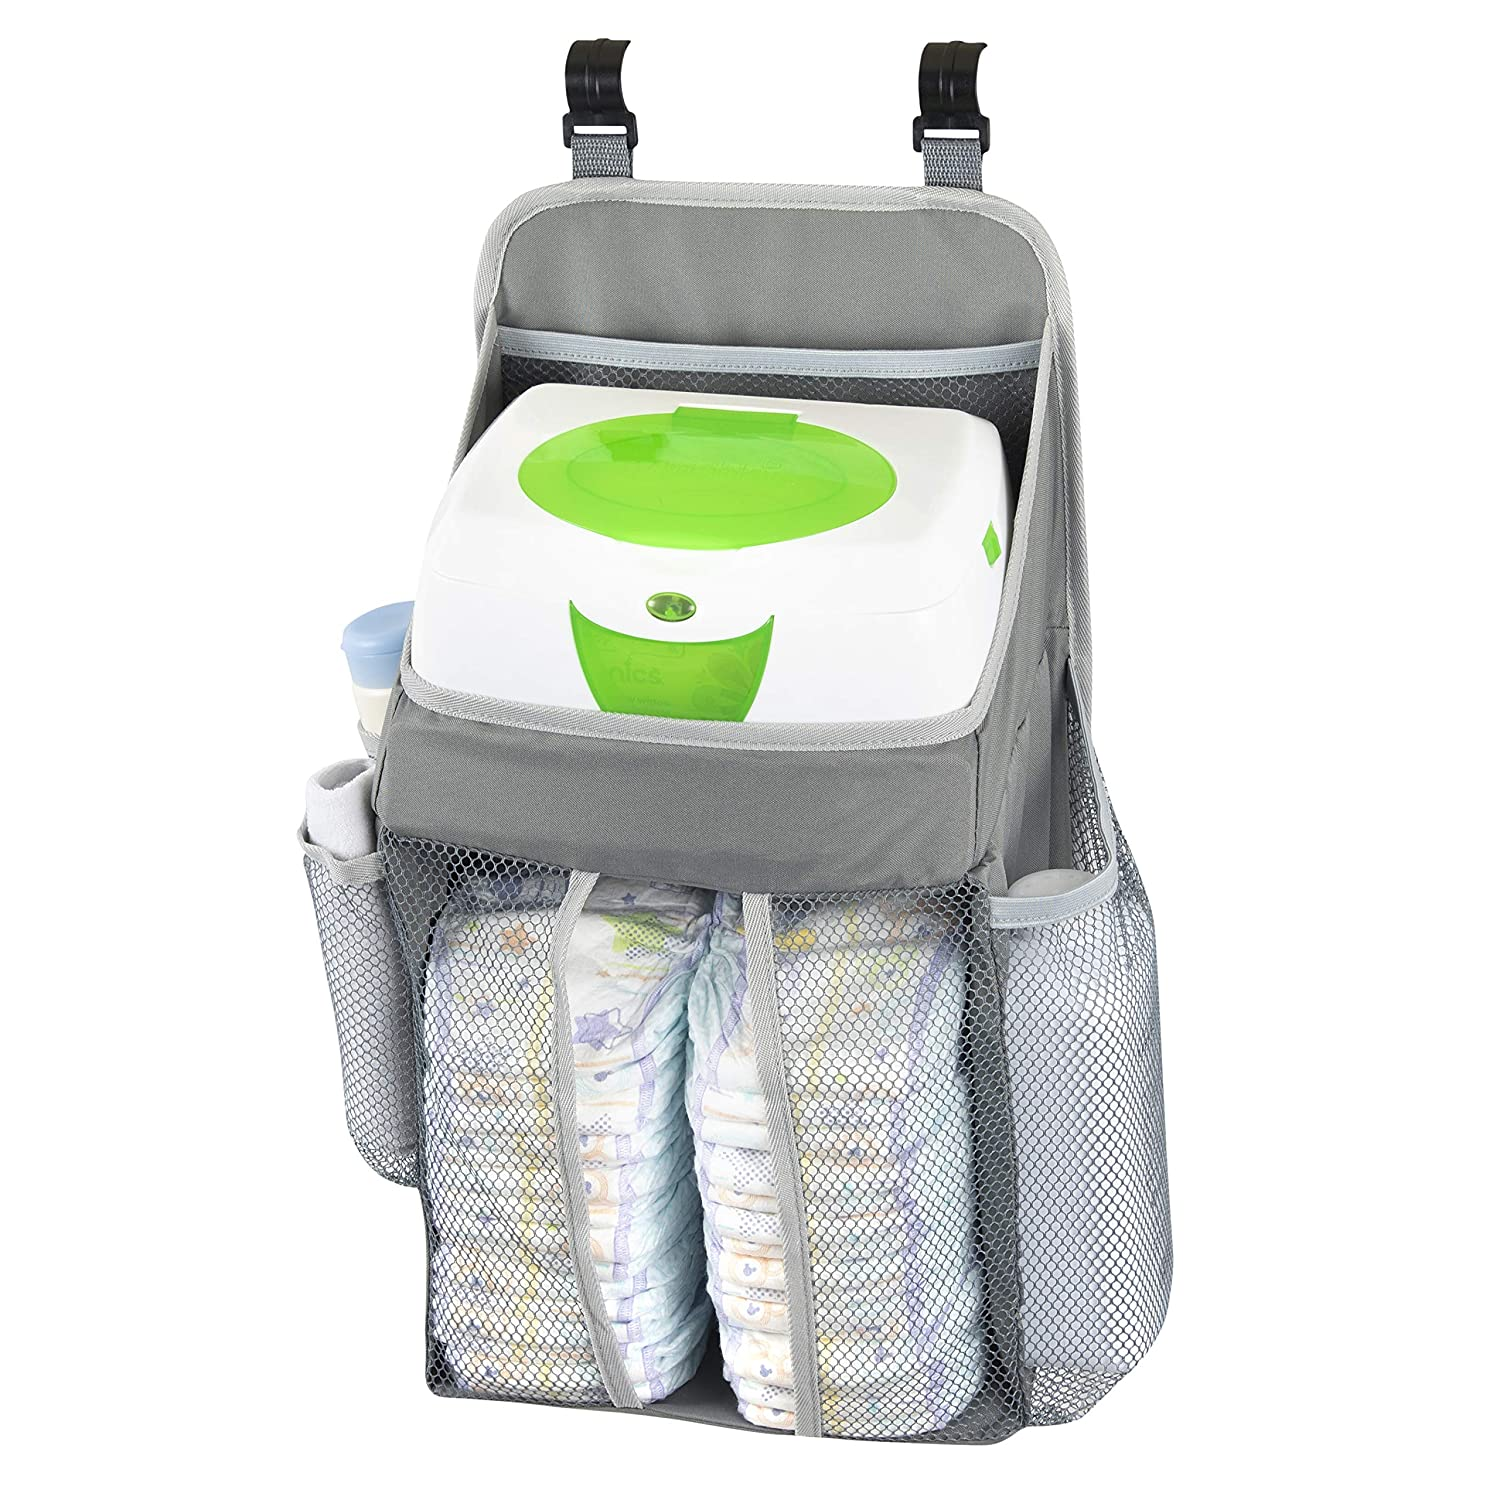 Hanging Baby Diaper Caddy Organizer - Hang On Door, Crib Or Infant Changing Table - Nursery Station Basket For Diapers, Wet Wipes, Clothes Storage - Waterproof & Stylish - Unisex Grey For Boys & Girls